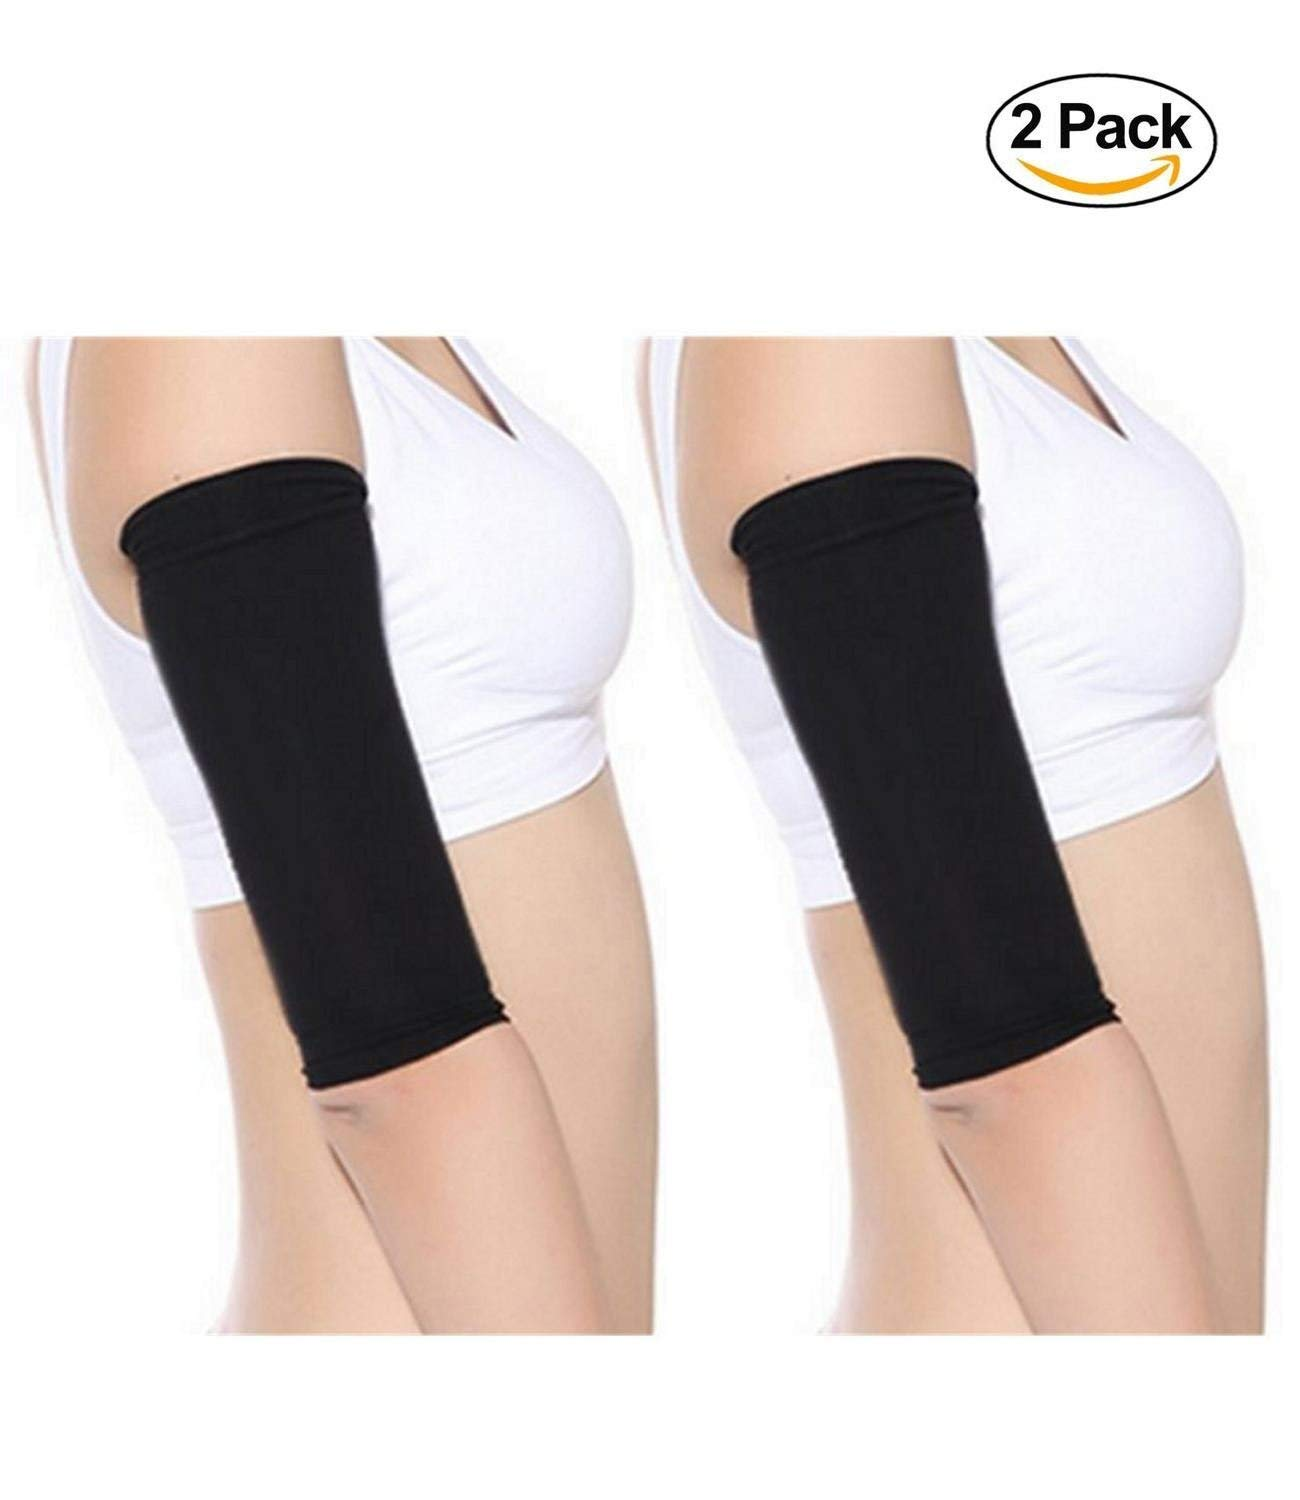 edbf7ecc6b62b Get Quotations · Starmace 2 Pack Slimming Arms Shaping Tone Energize Upper  Arm Compression RV Sun Protection Support Sleeves